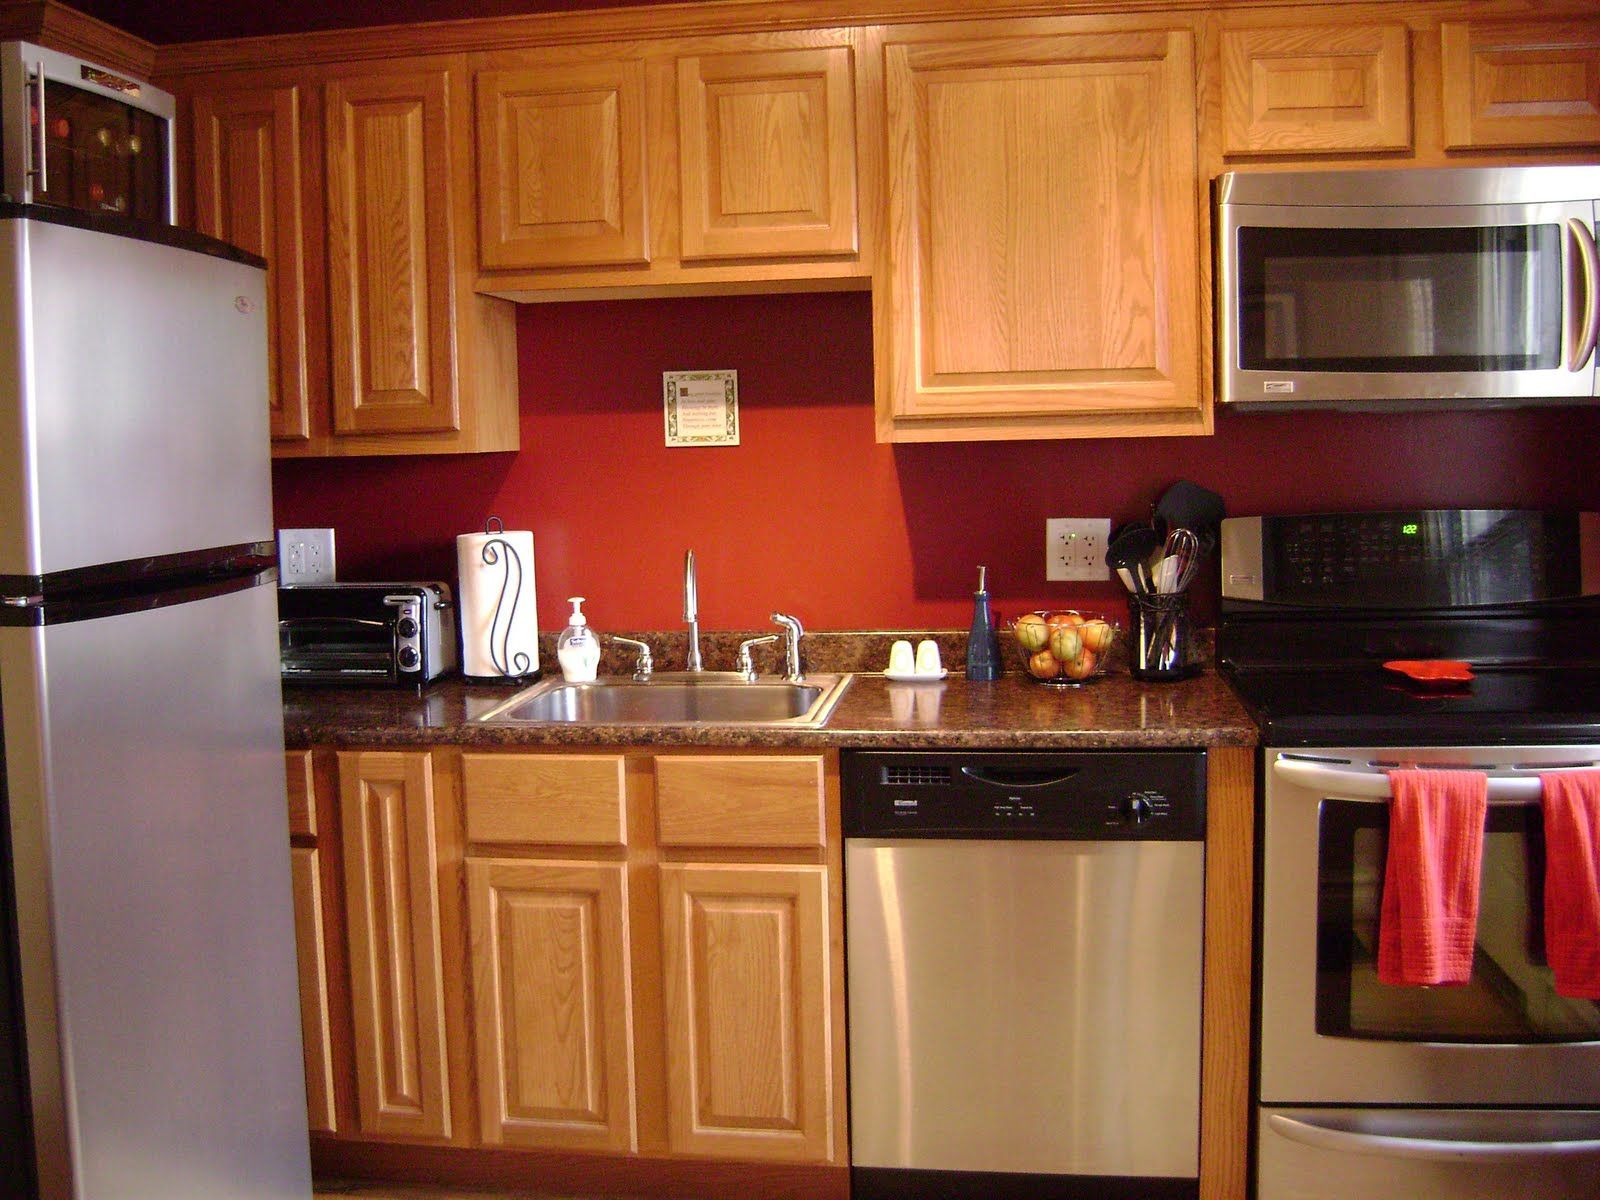 Kitchen wall color ideas with oak cabinets design idea Kitchen design wall color ideas